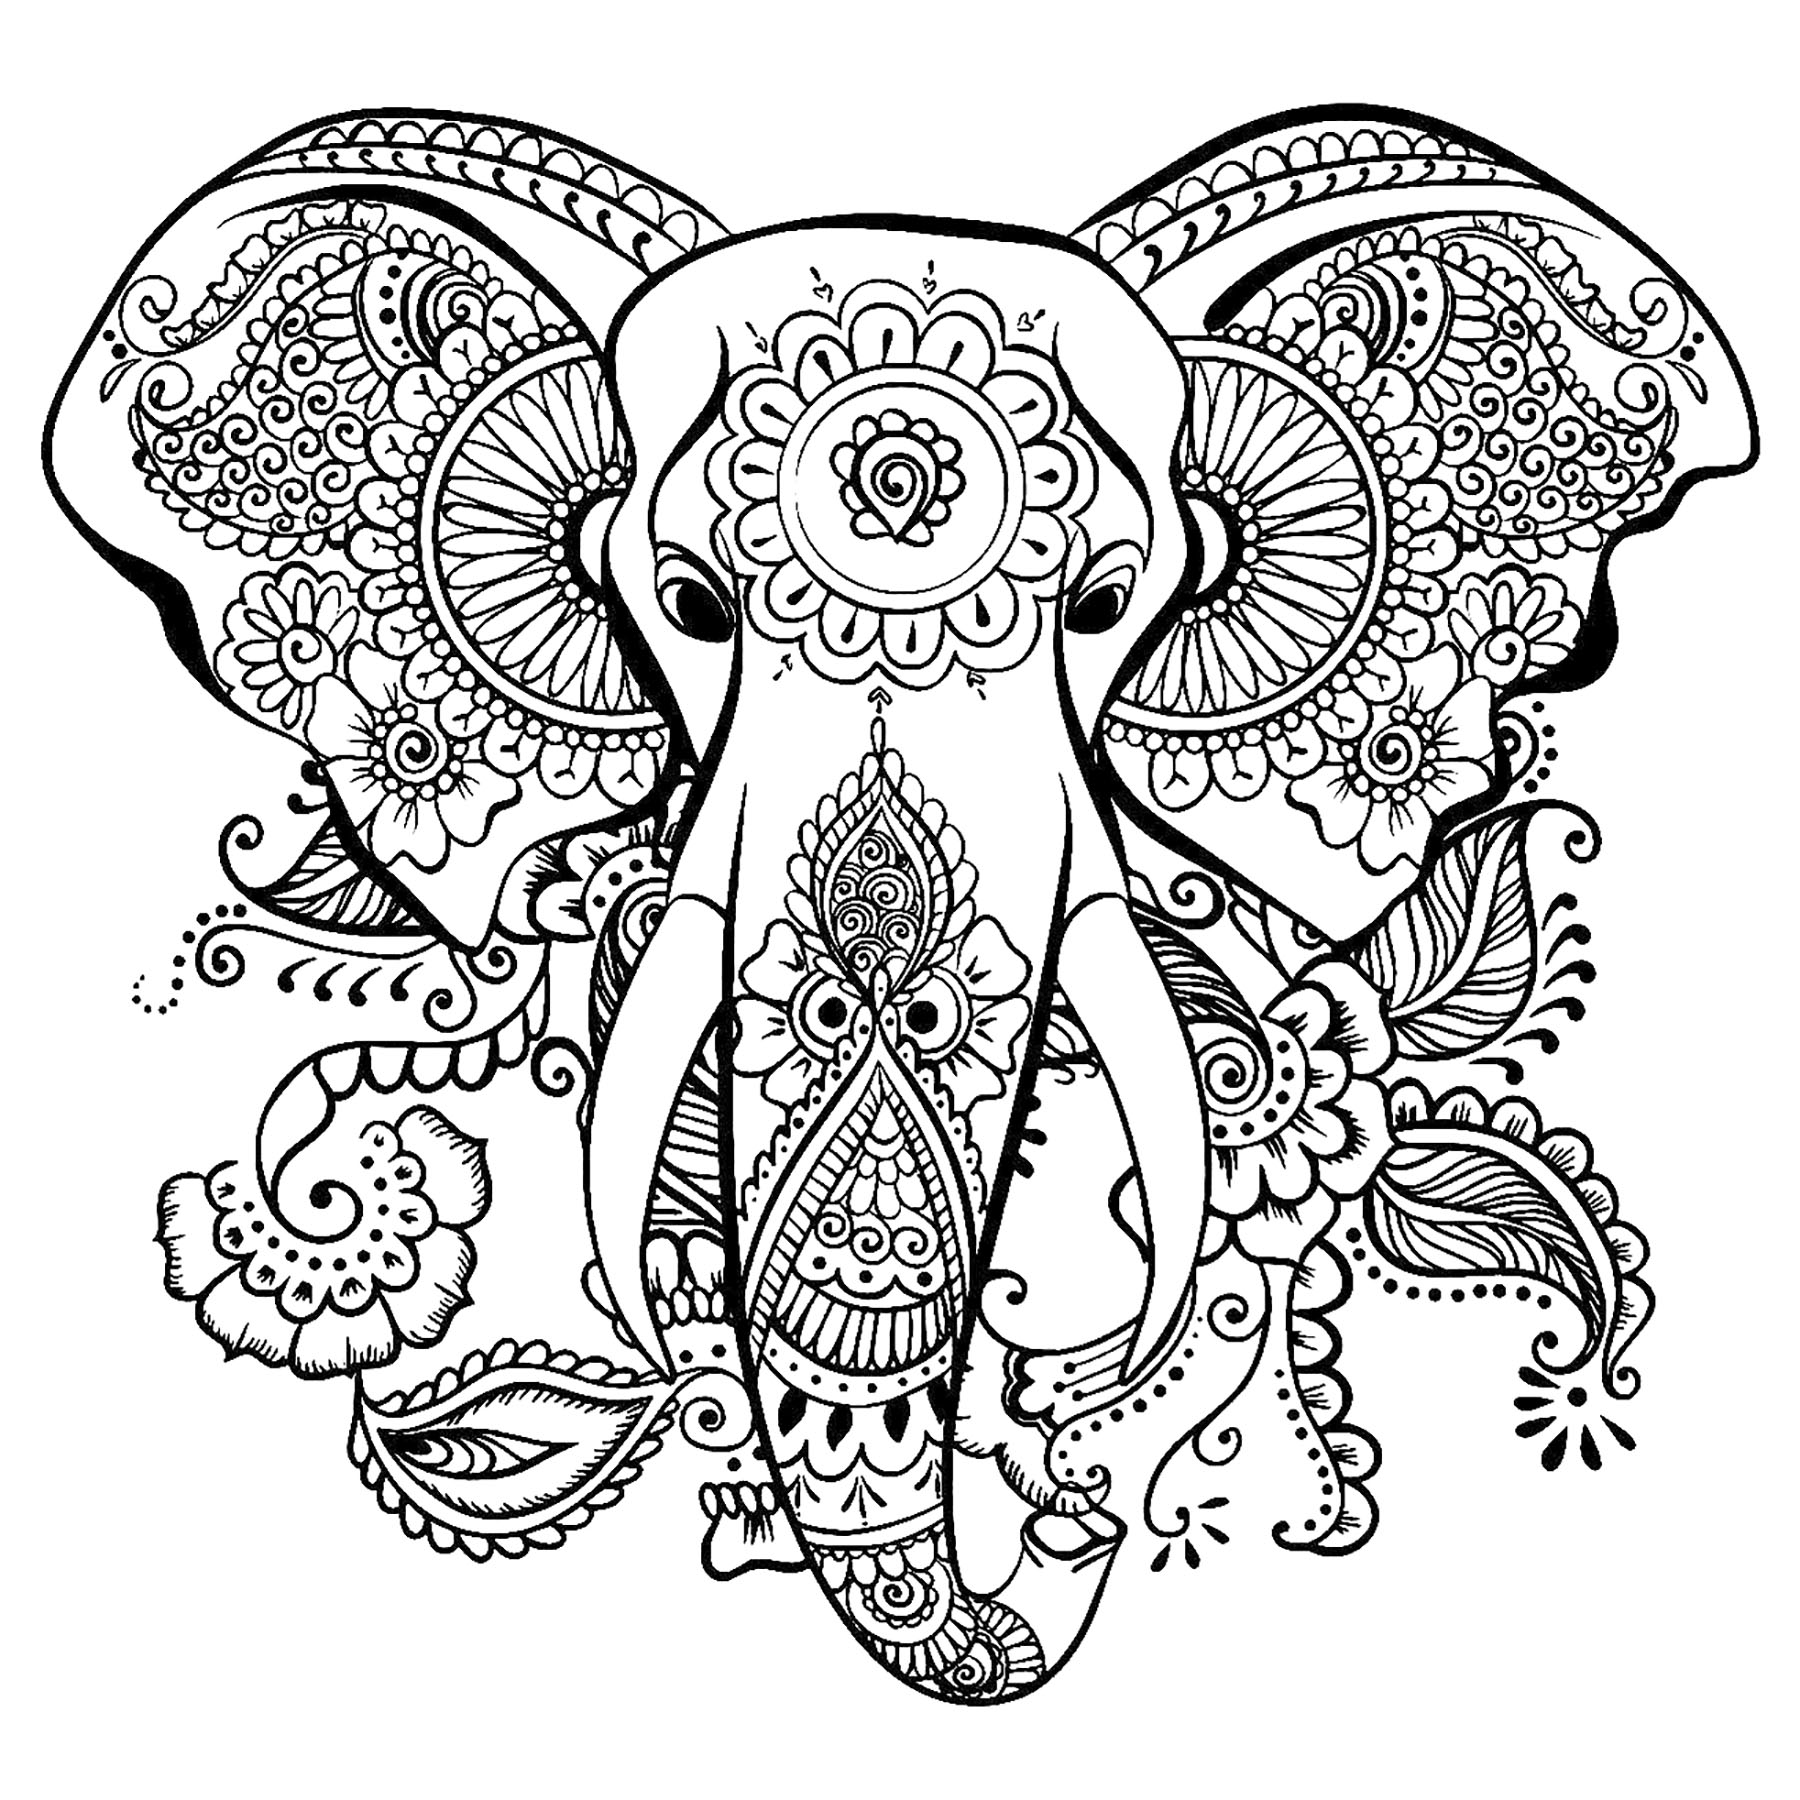 Elephant head to color, with beautiful patterns